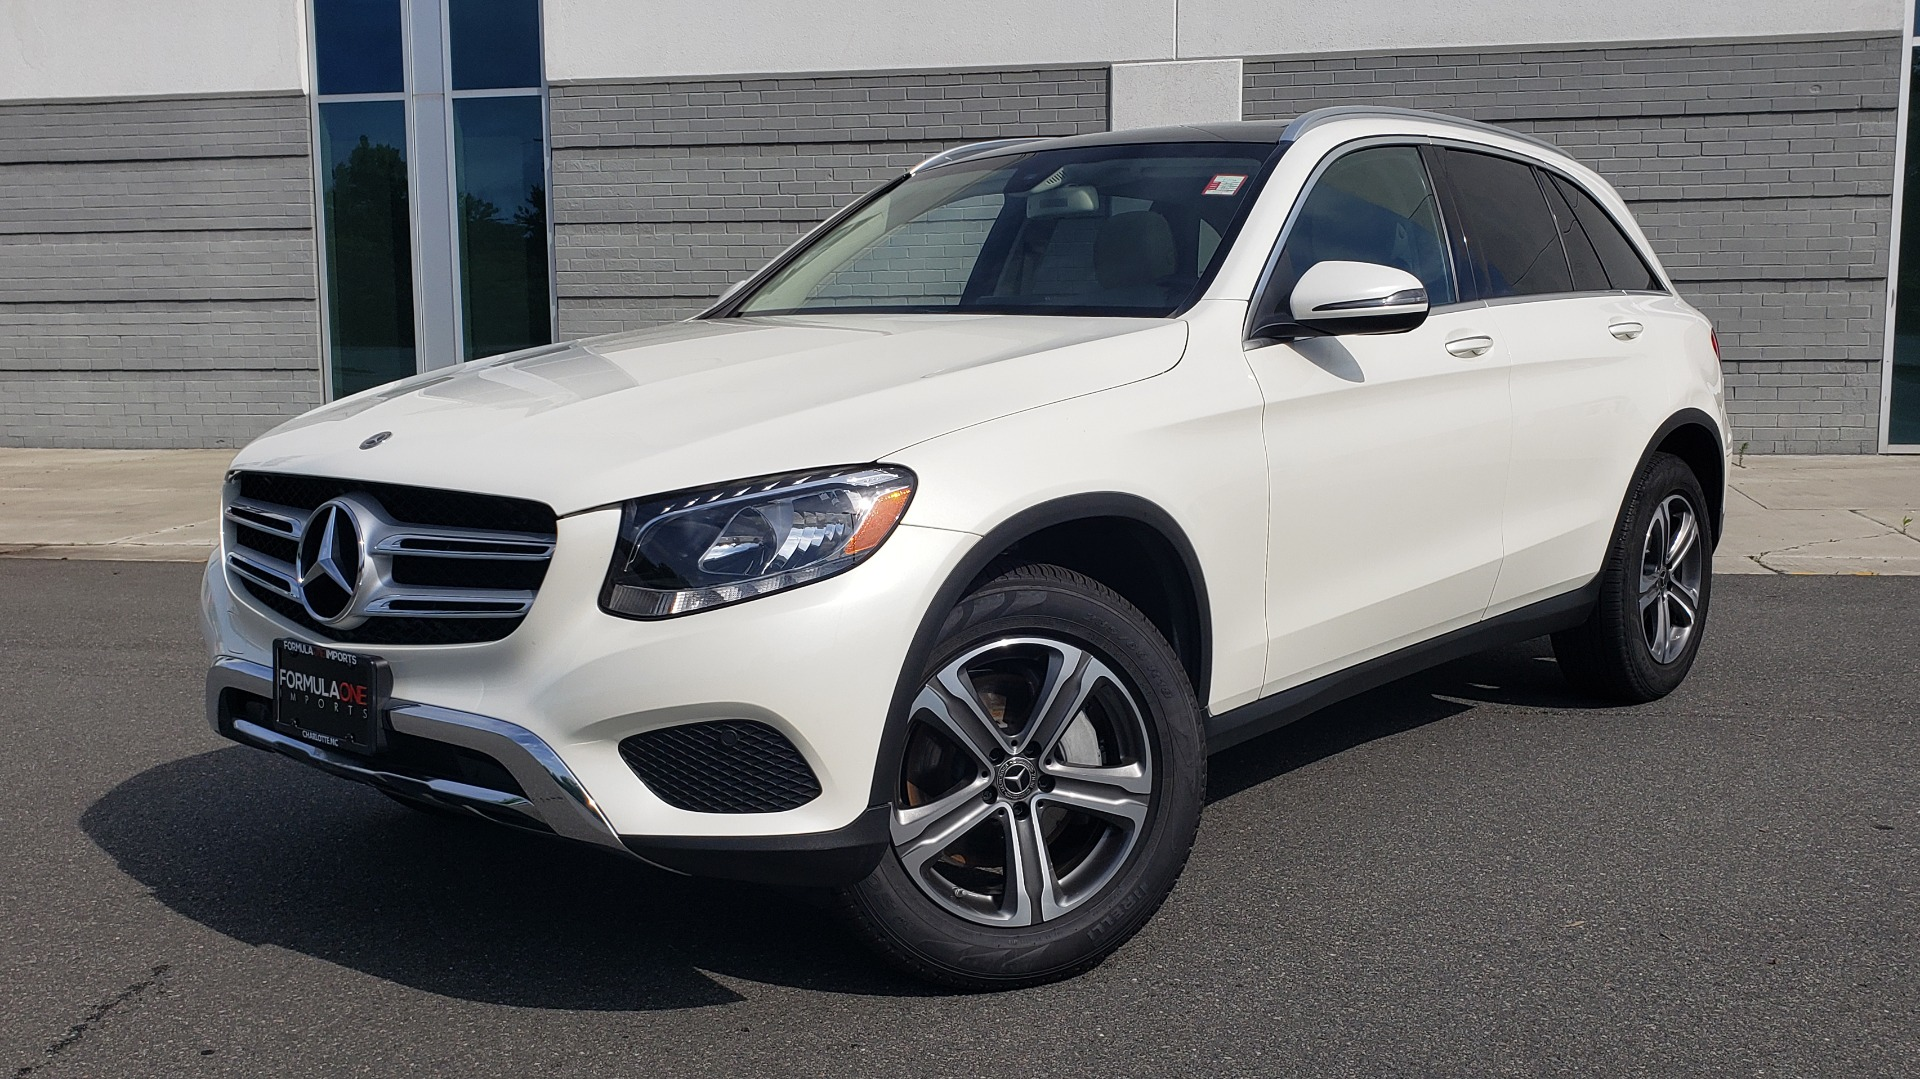 Used 2018 Mercedes-Benz GLC 300 4MATIC / PREM PKG / PANO-ROOF / APPLE / REARVIEW for sale $33,397 at Formula Imports in Charlotte NC 28227 1